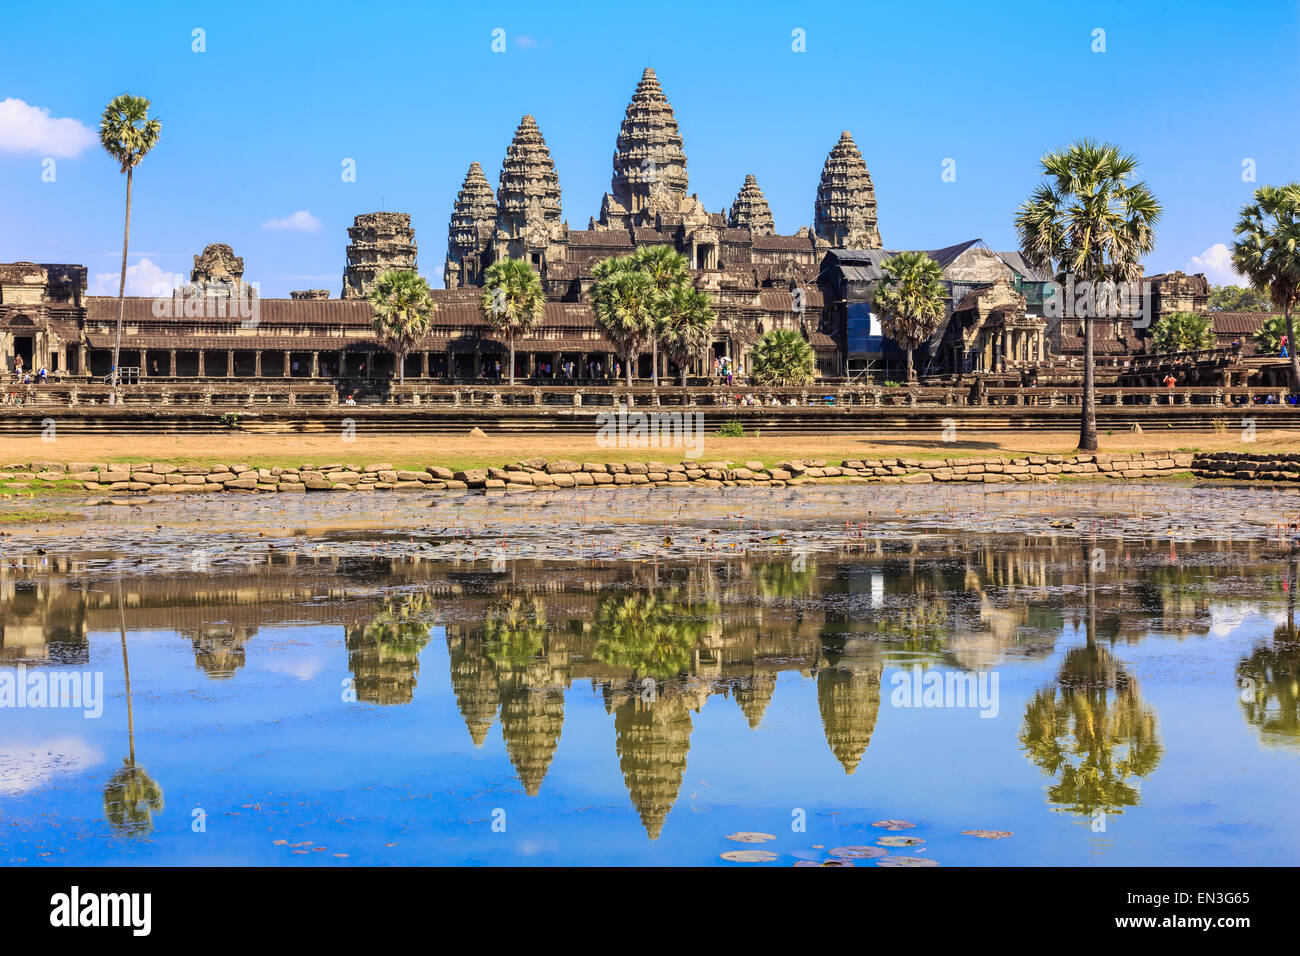 Ancient temple Angkor Wat from across the lake. The largest religious monument in the world. Siem Reap, Cambodia - Stock Image